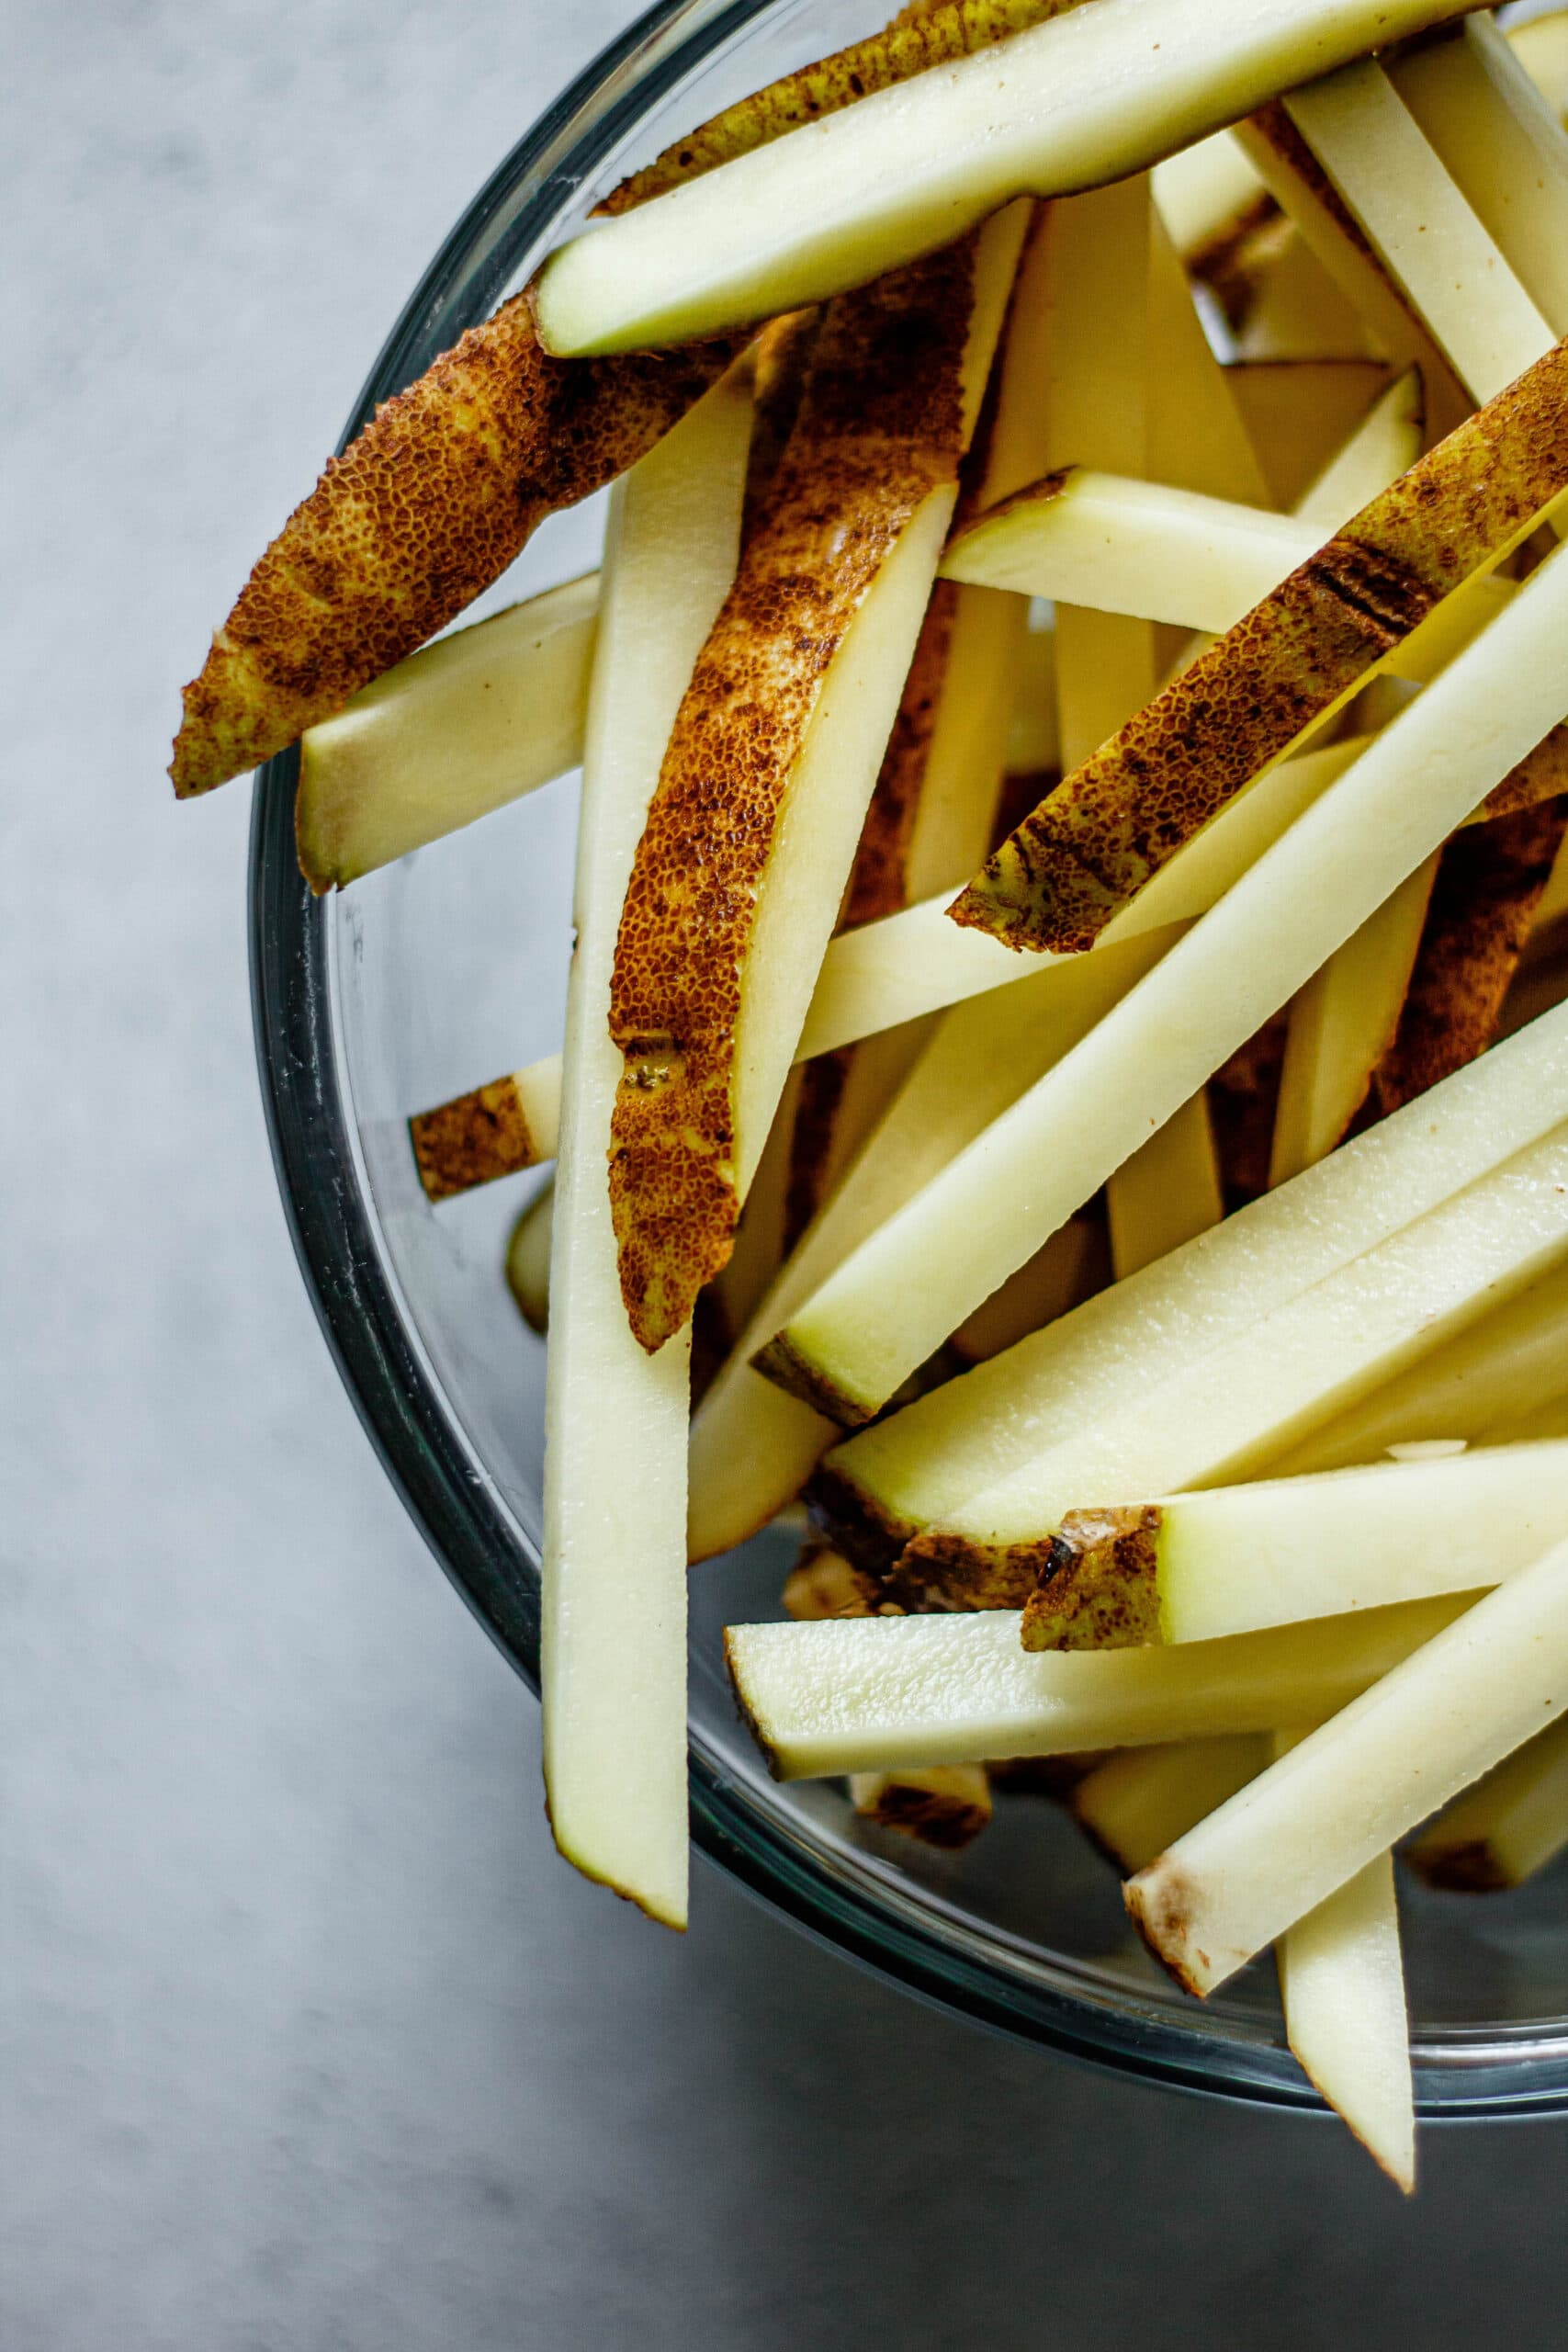 raw potatoes cut into French fries in glass mixing bowl